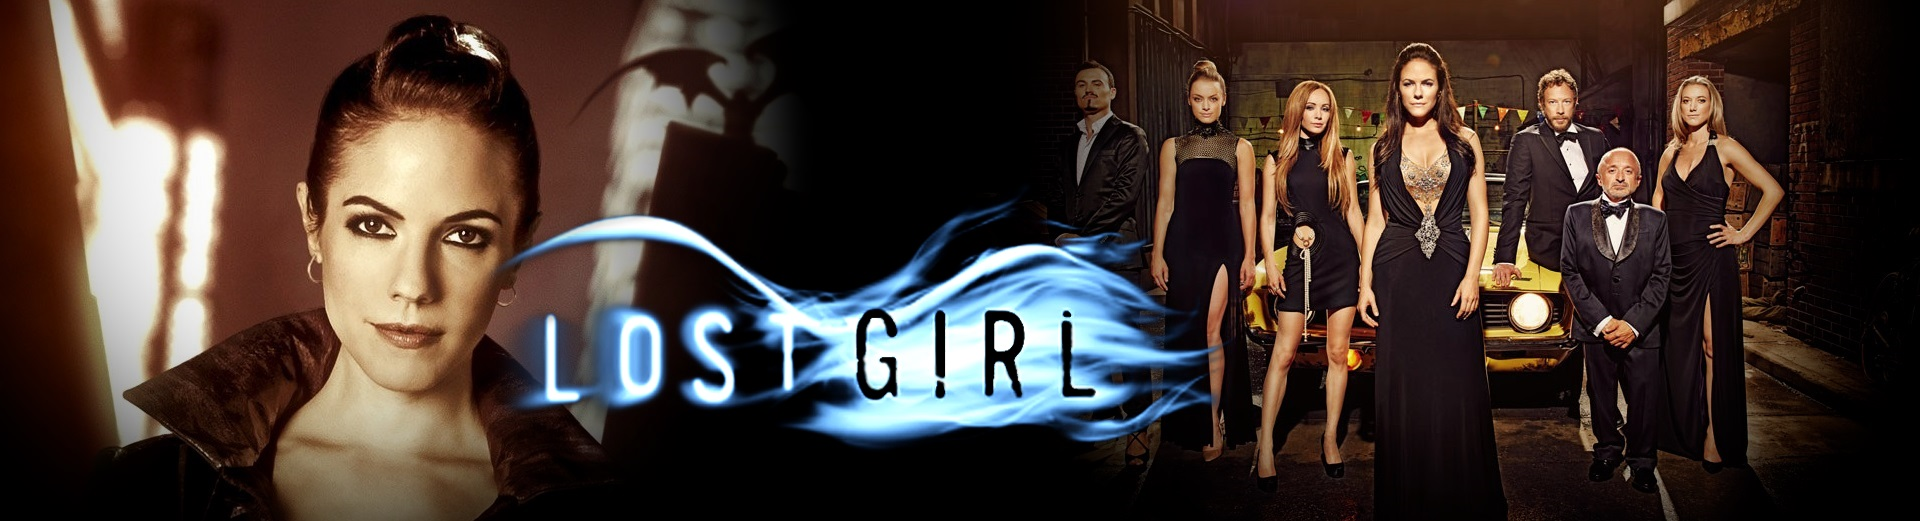 Lost Girl TV Online Forum